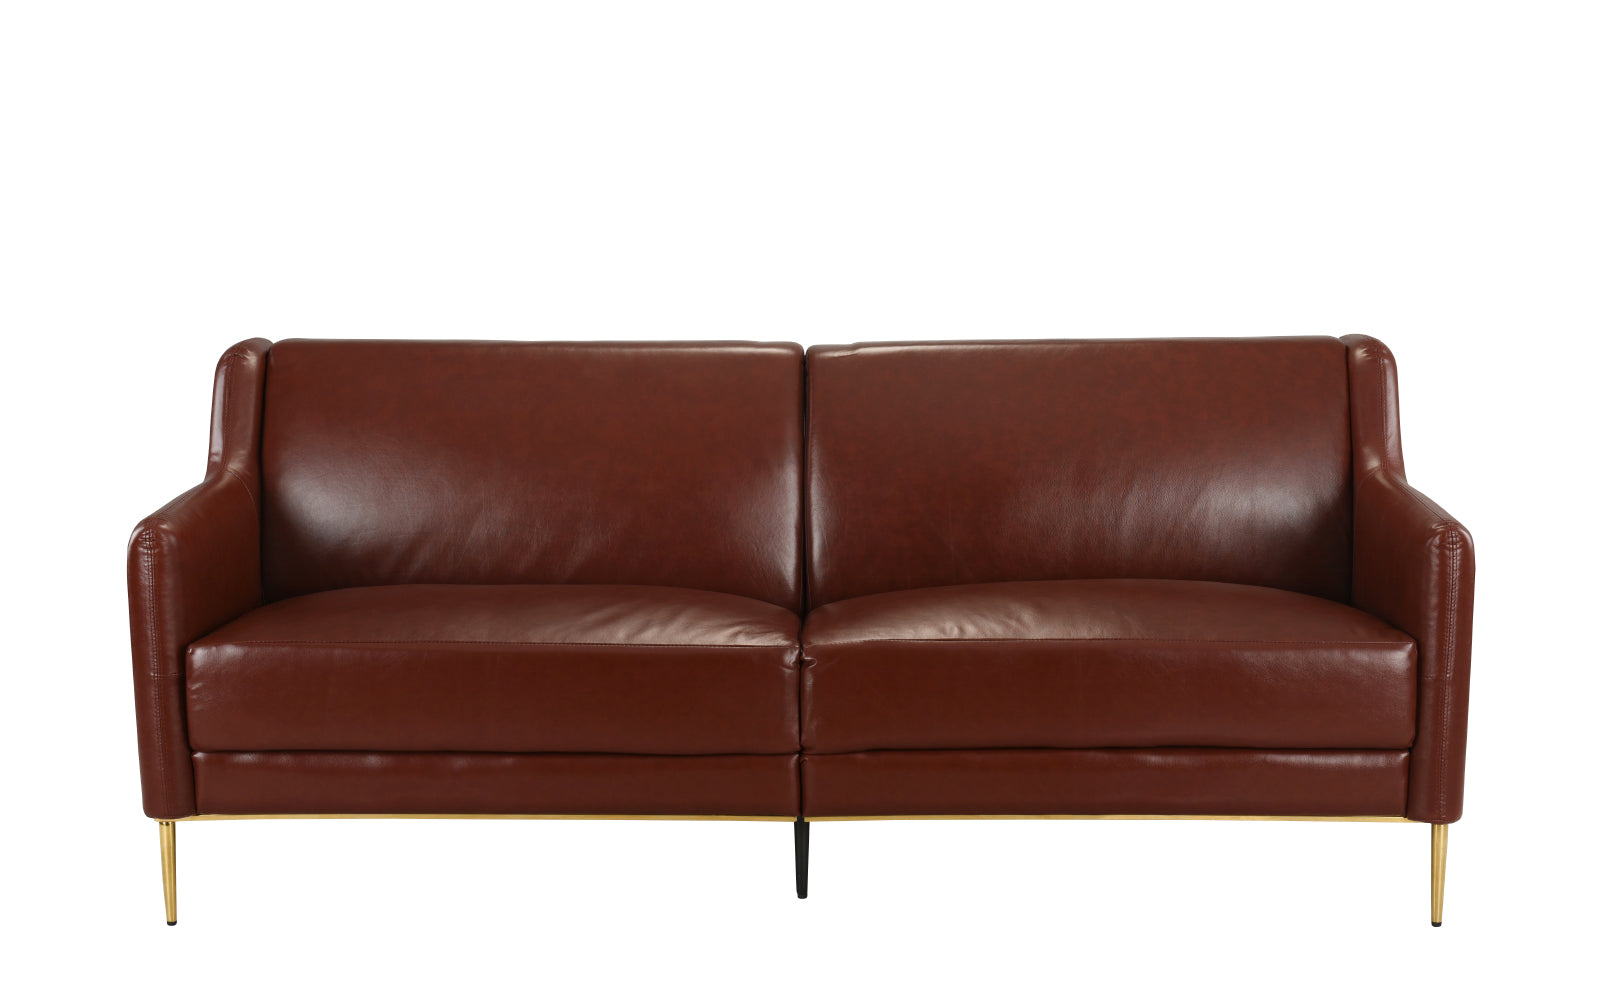 Living Room Sofa Leather Match Image